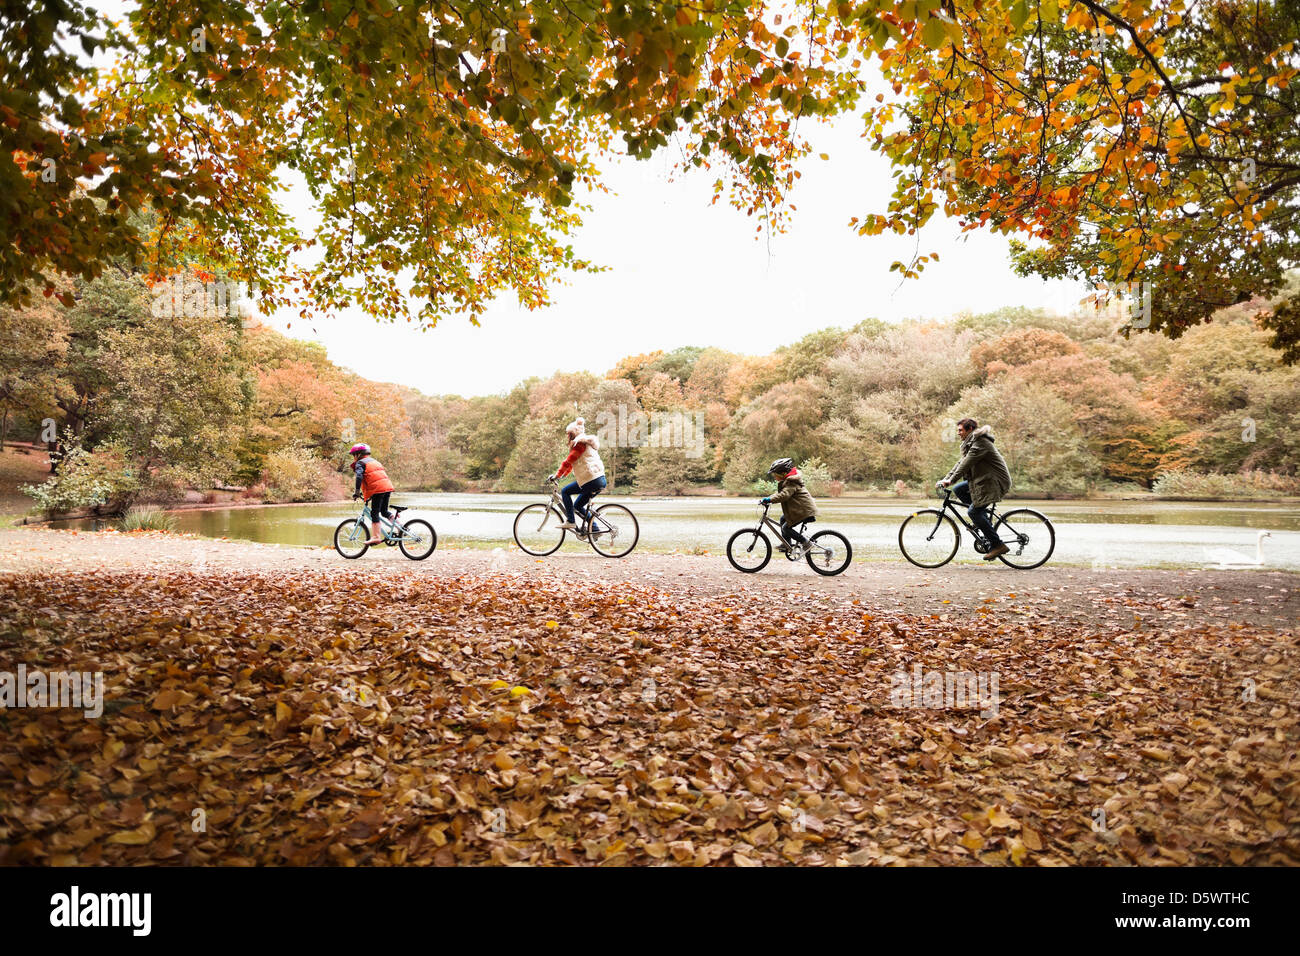 Family riding bicycles in park - Stock Image